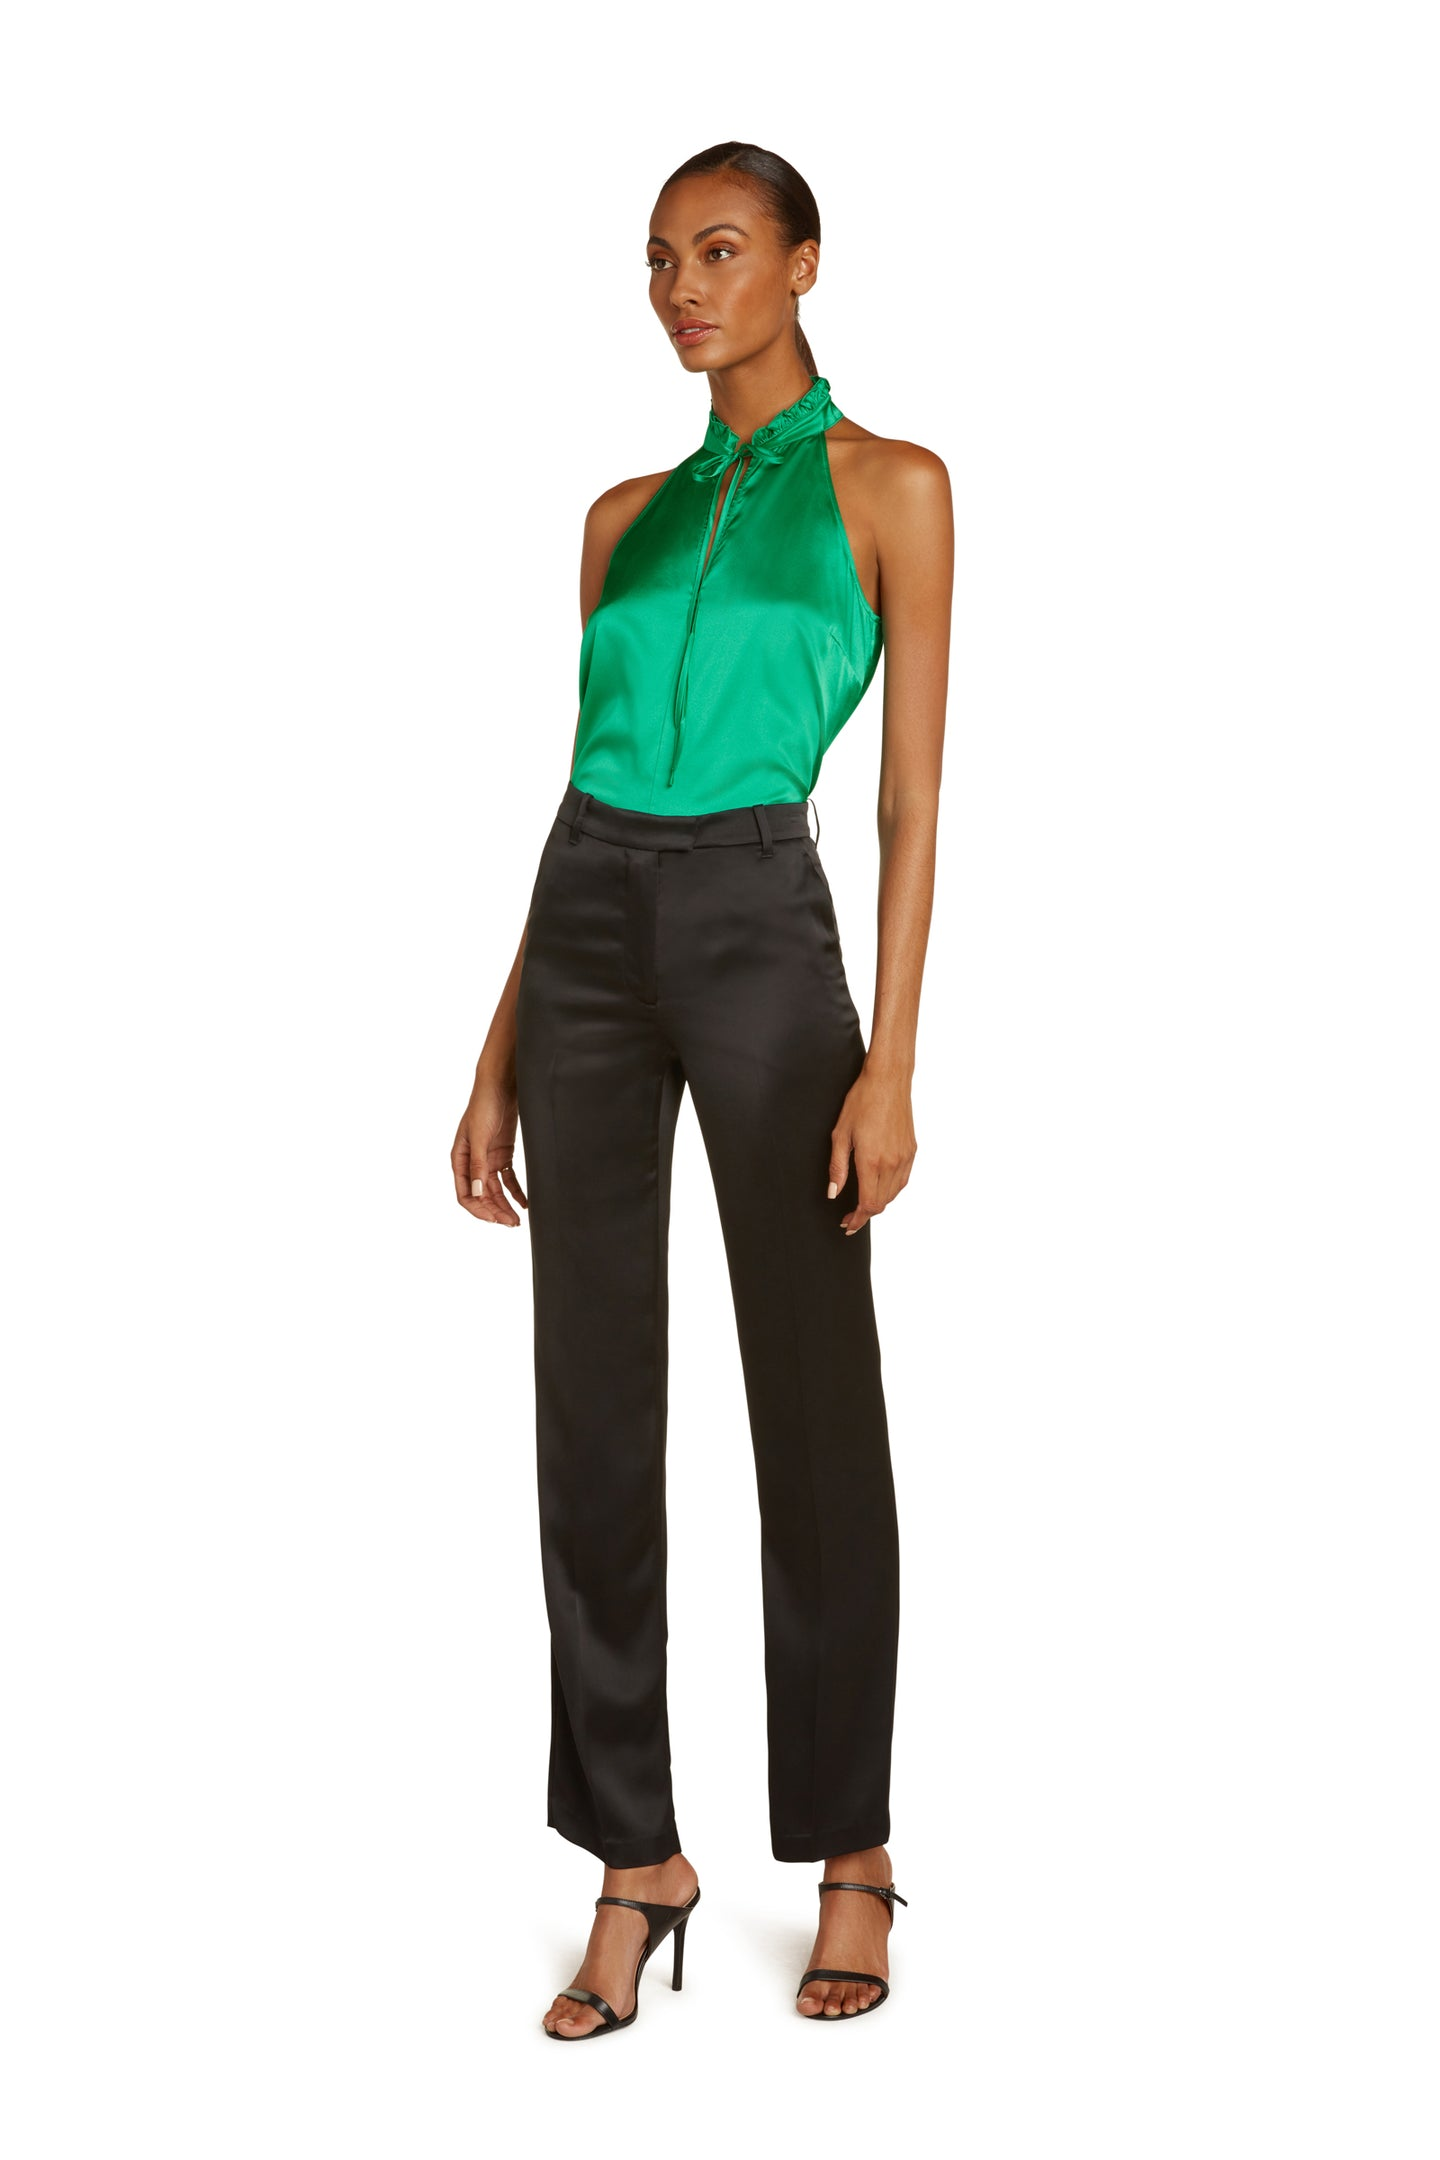 Josephine Silk Halter Top in Vivid Green